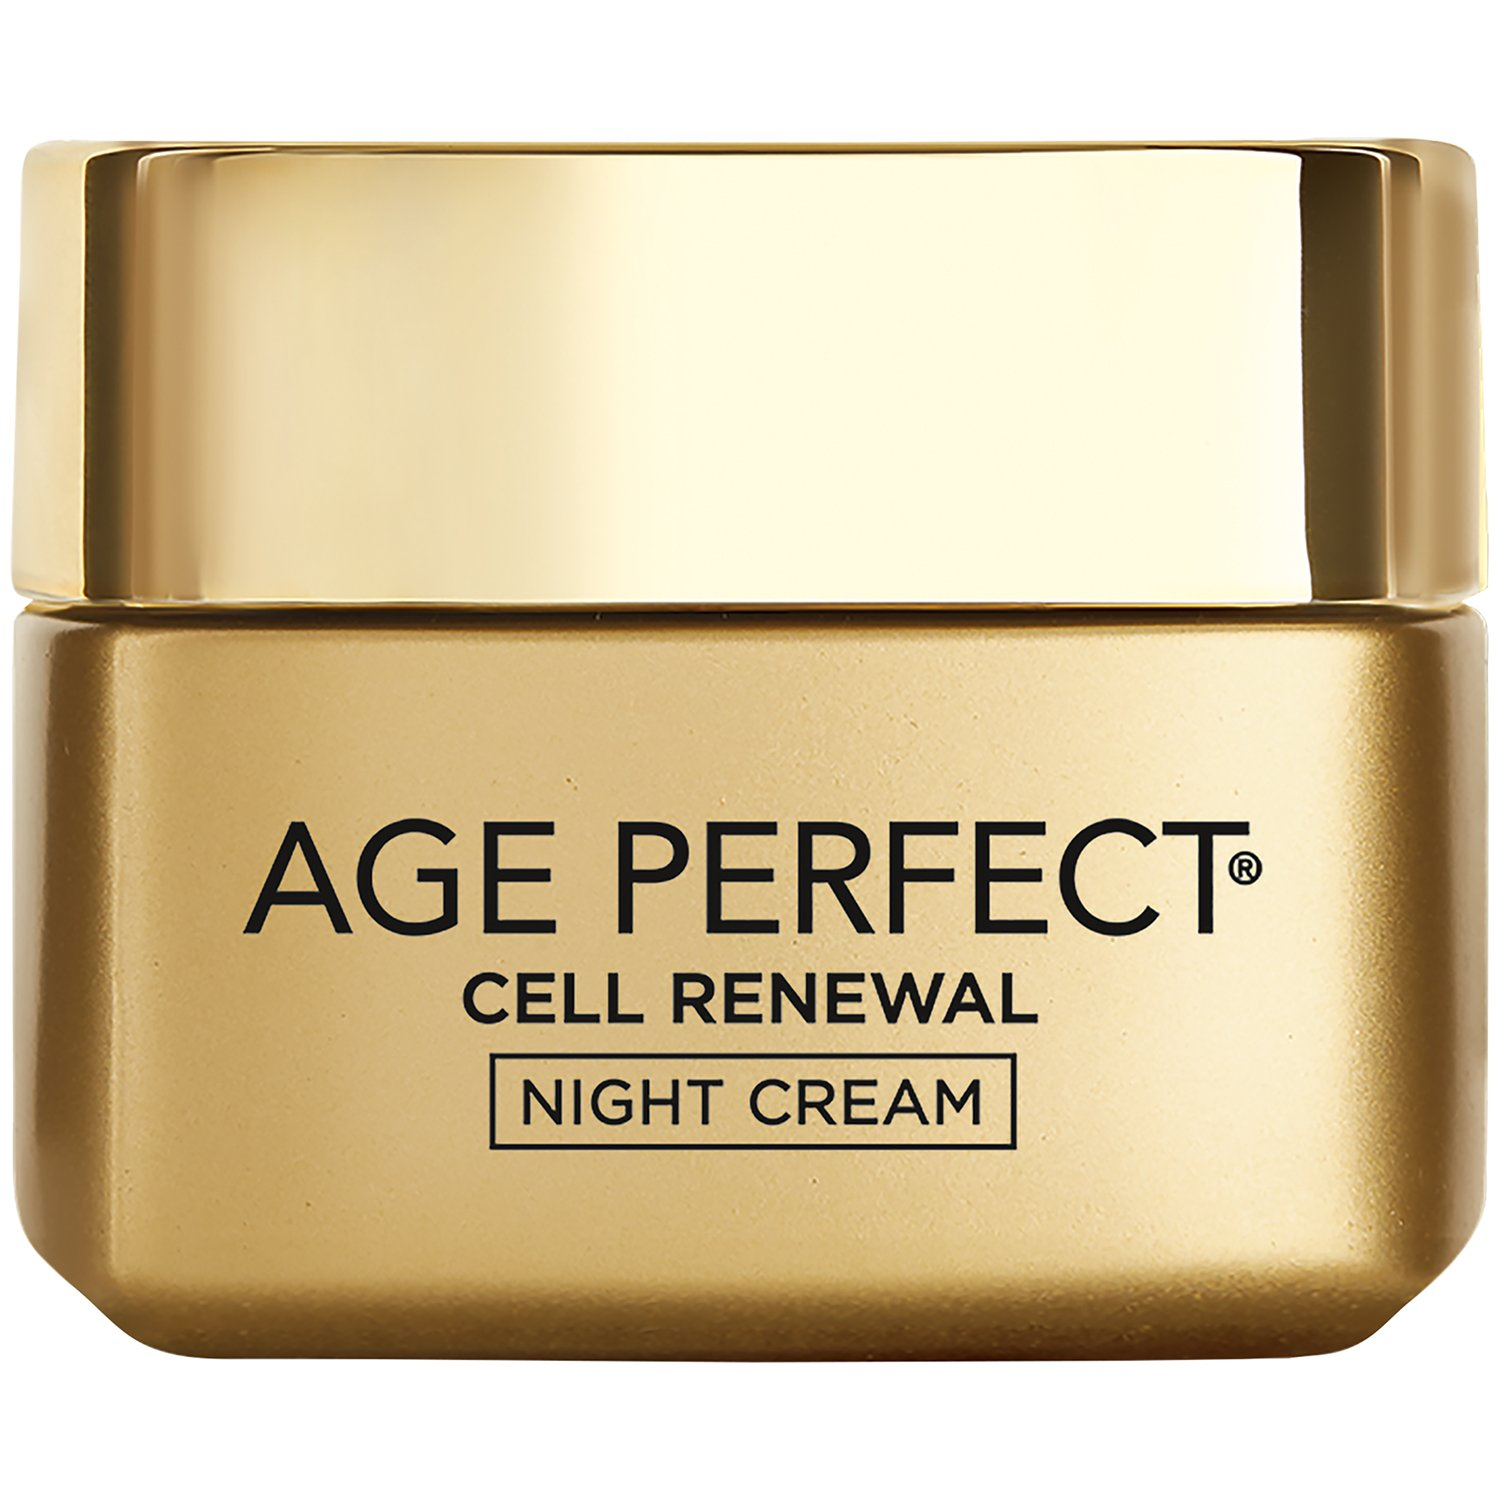 L Oreal Age Perfect Cell Renewal